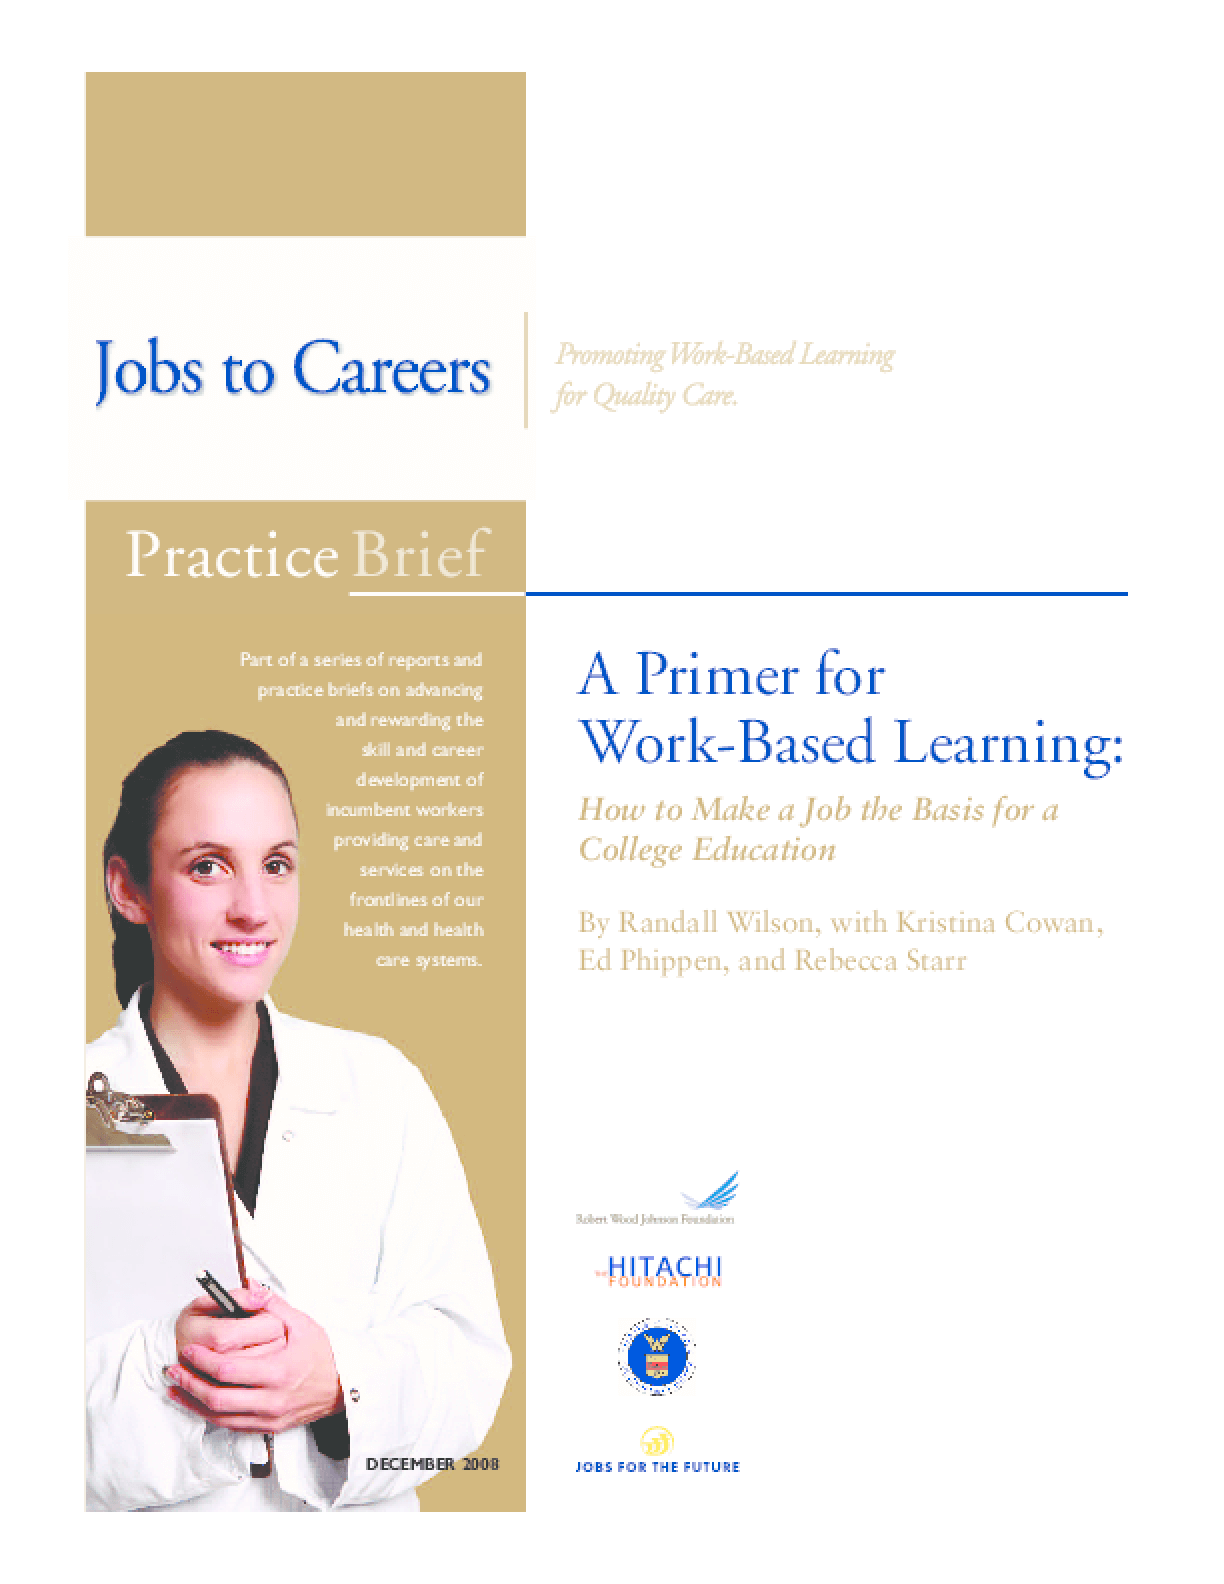 A Primer for Work-Based Learning: How to Make a Job the Basis for a College Education